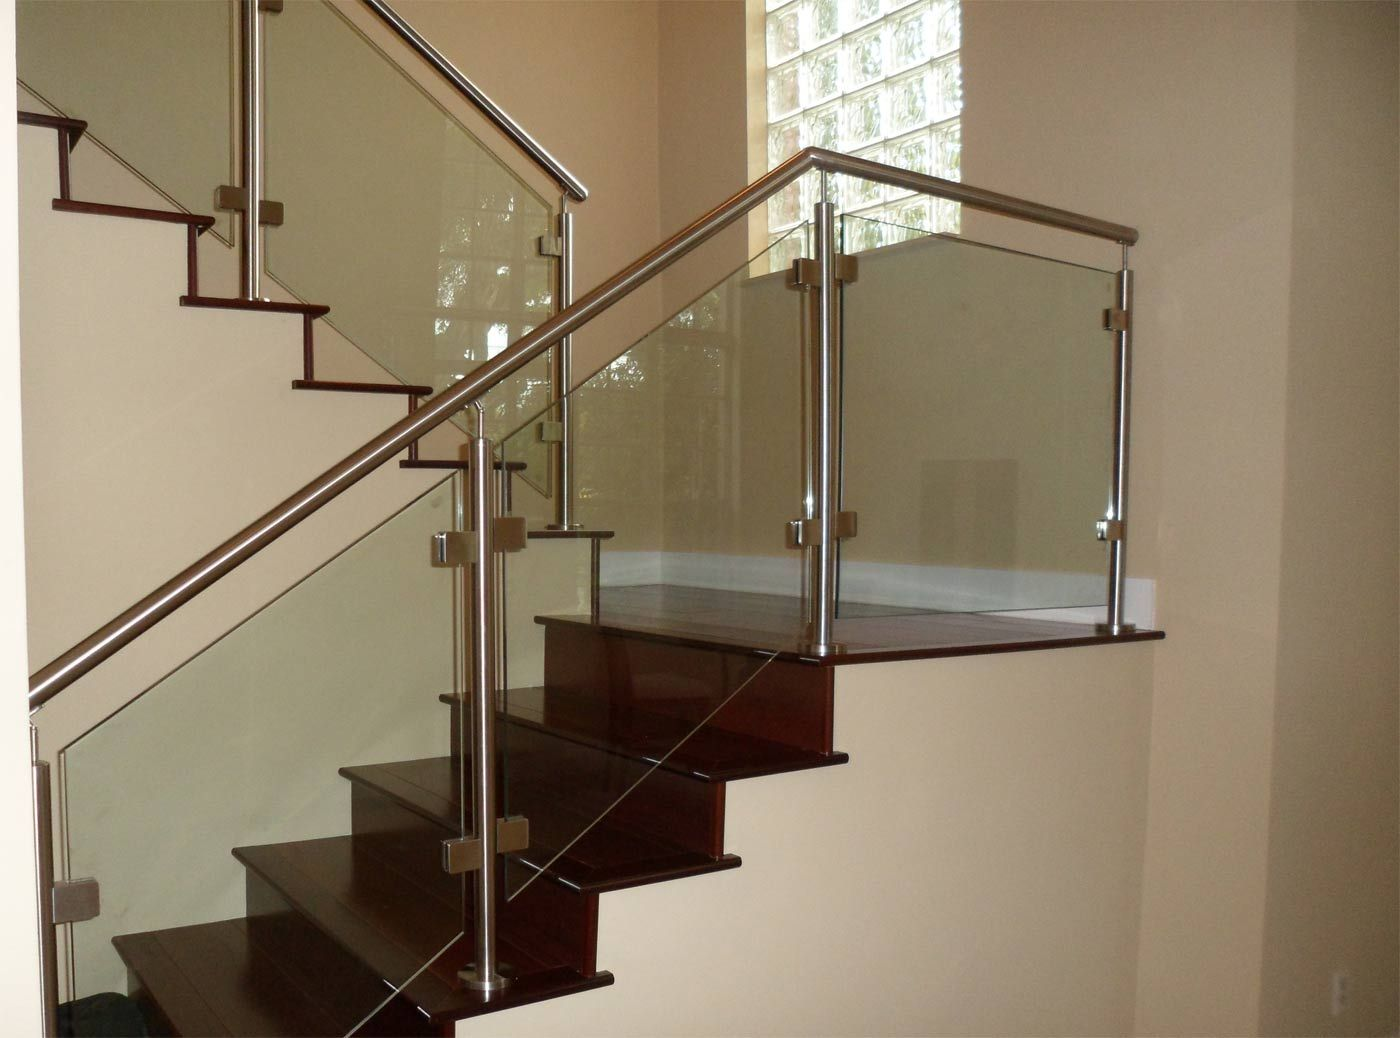 Stair, : Modern Image Of Home Interior Decoration With Half Turn Solid  Cherry Wood Staircase Including Glass Stainless Steel Staircase Railing And  Steel ...